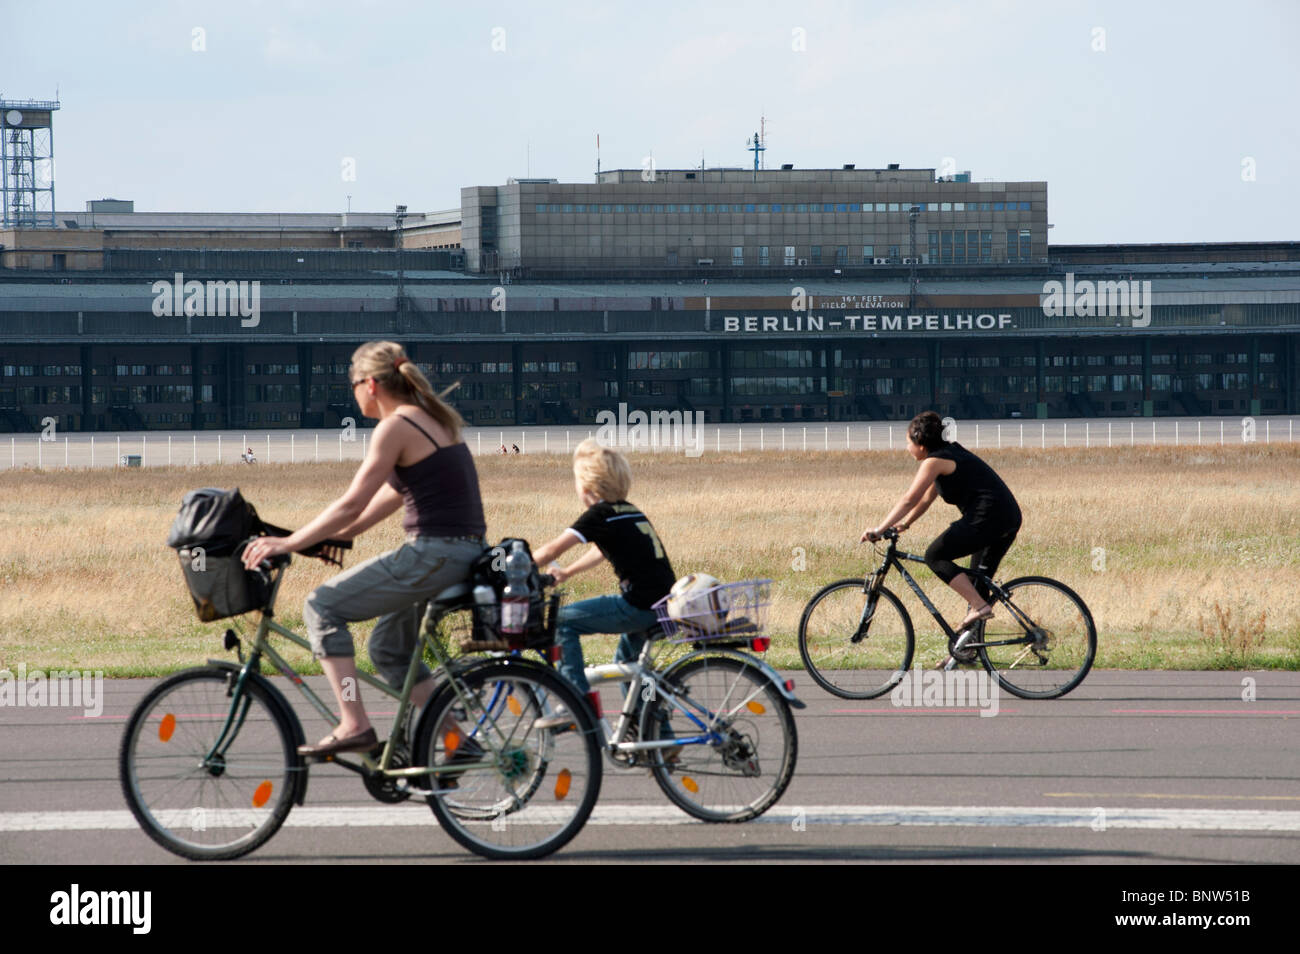 Family cycling on runway at new city public Tempelhofer Park on site of famous former Tempelhof Airport in Berlin - Stock Image